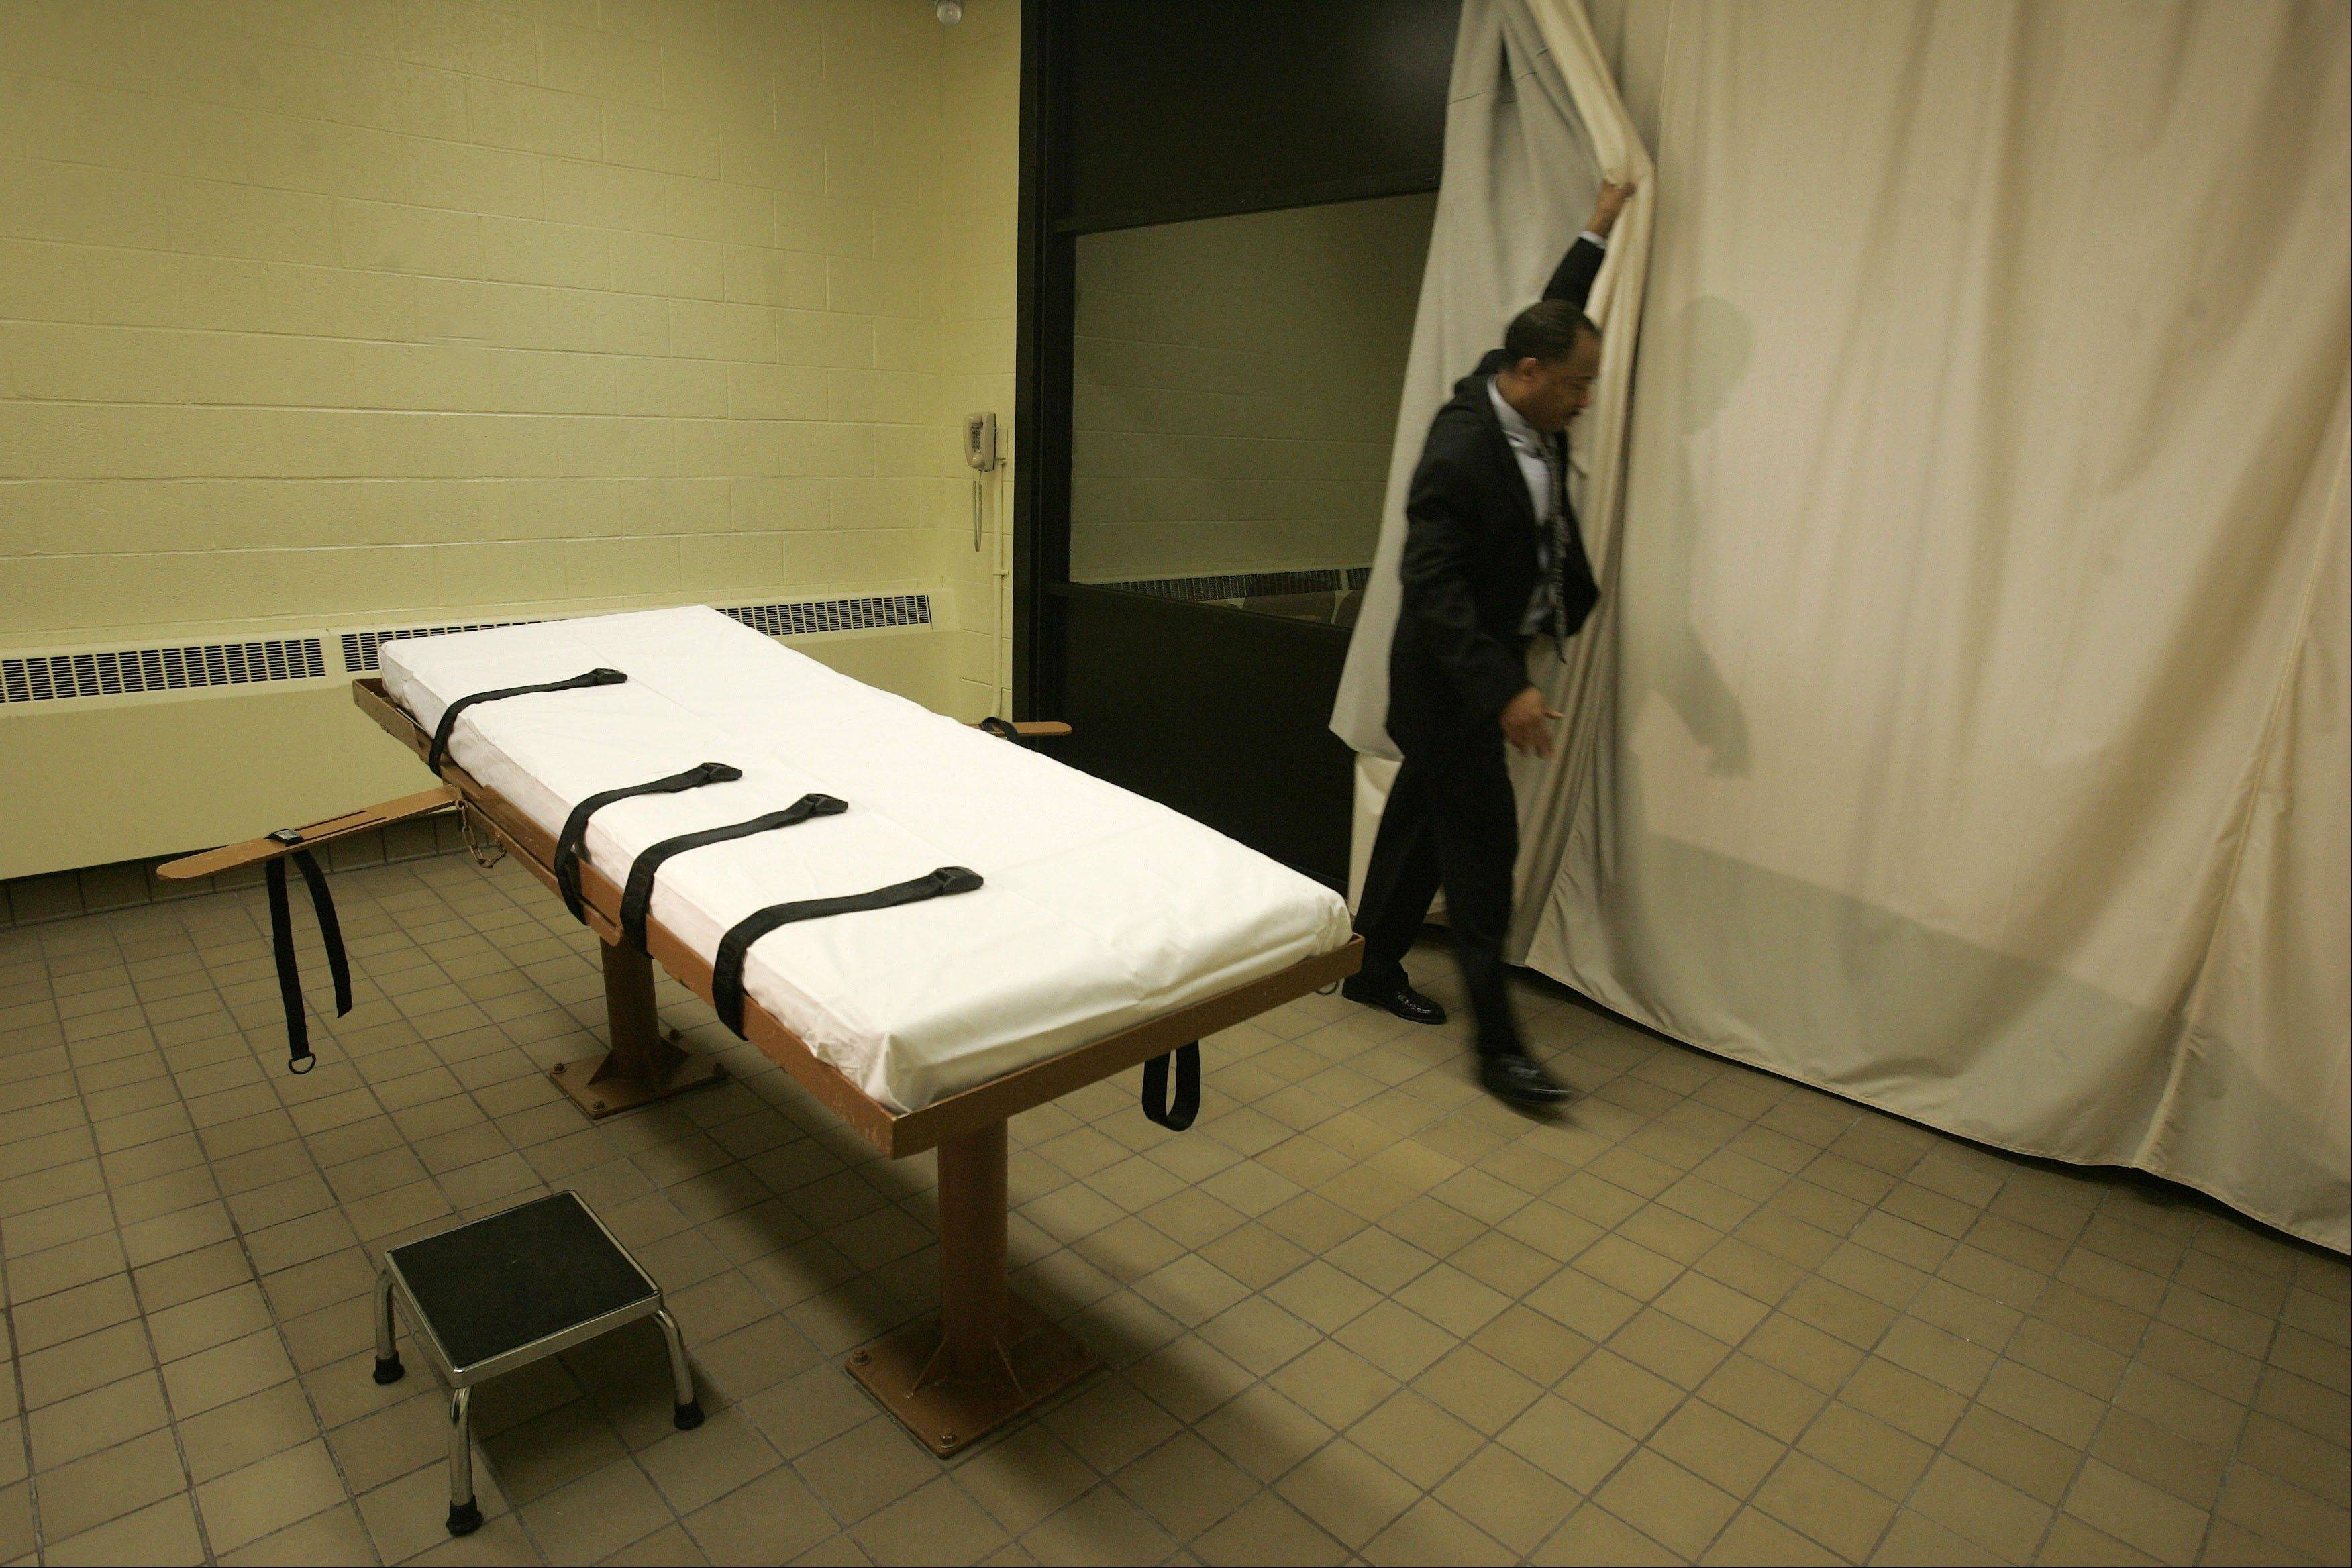 Warden Donald Morgan says the state's execution table at the Southern Ohio Correctional Facility in Lucasville, Ohio, can easily hold Ronald Post, scheduled to be executed in January 2013.